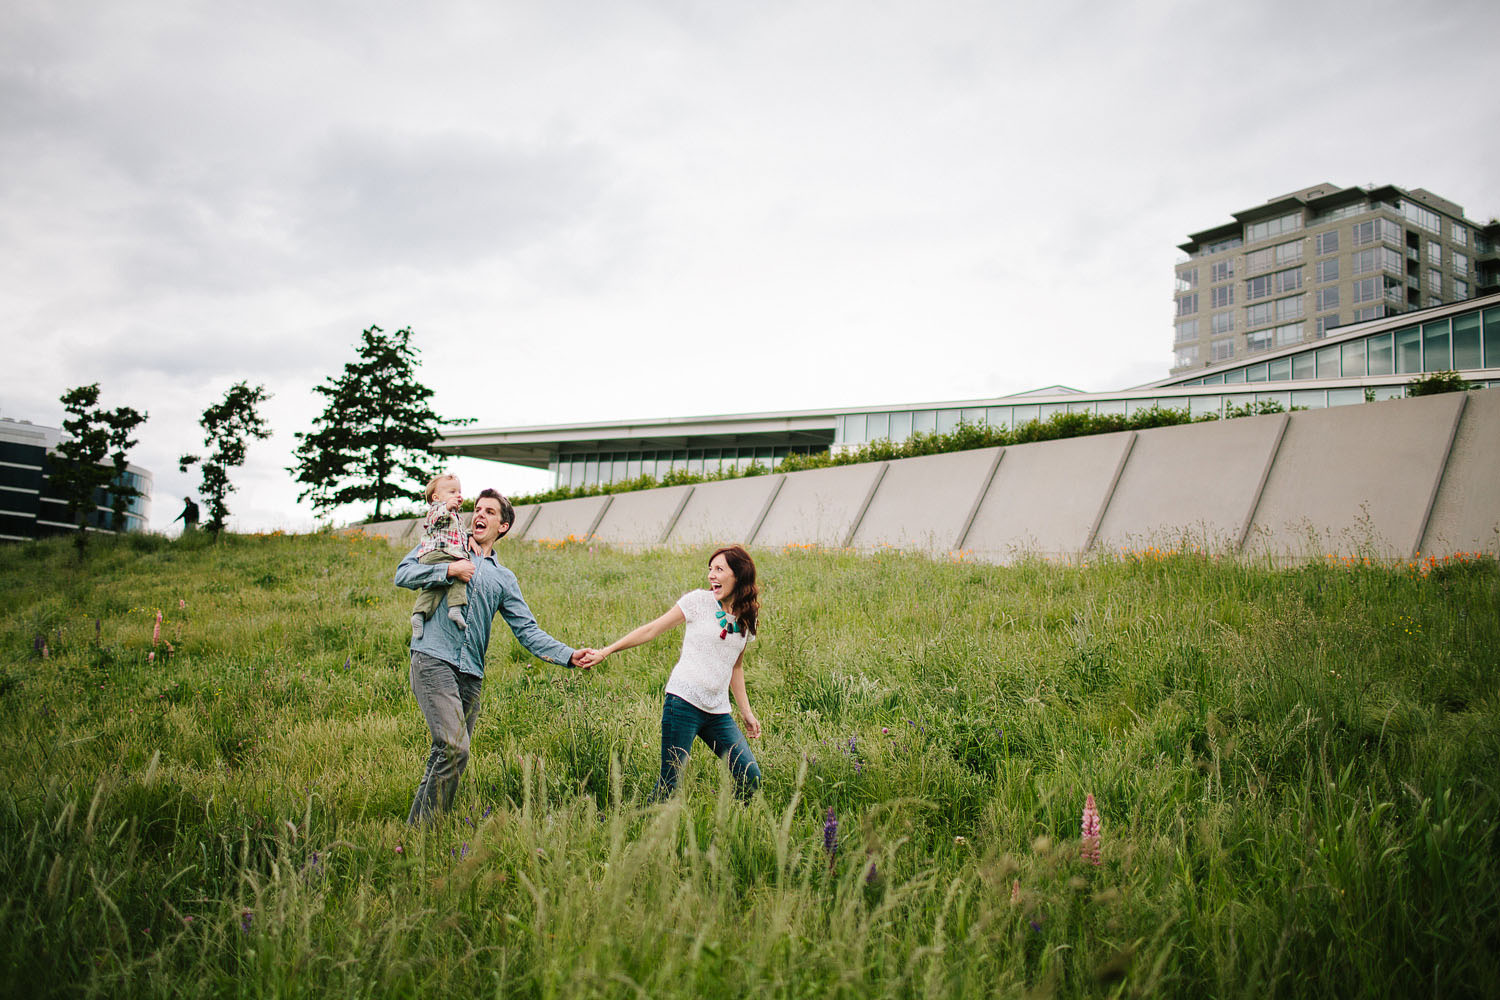 Seattle family photography - Olympic Sculpture Park